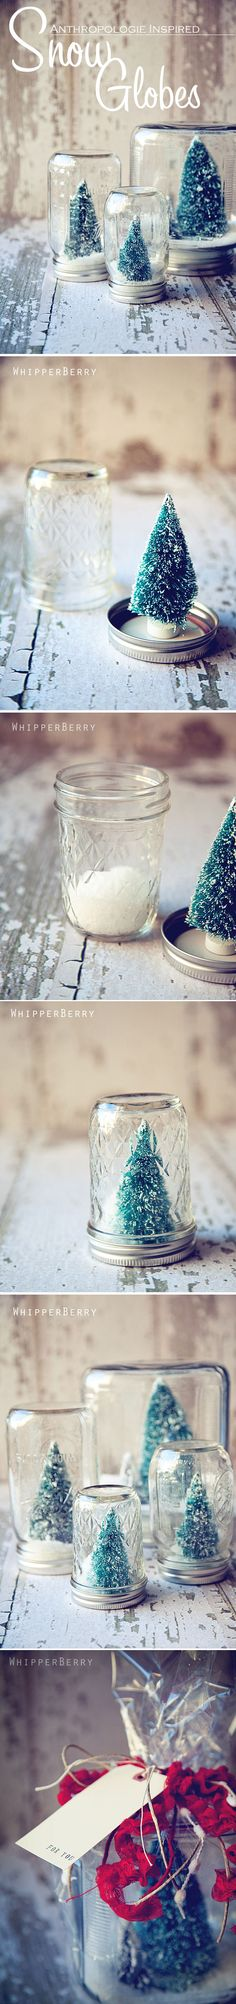 Inspired Snow Globes Tutorial